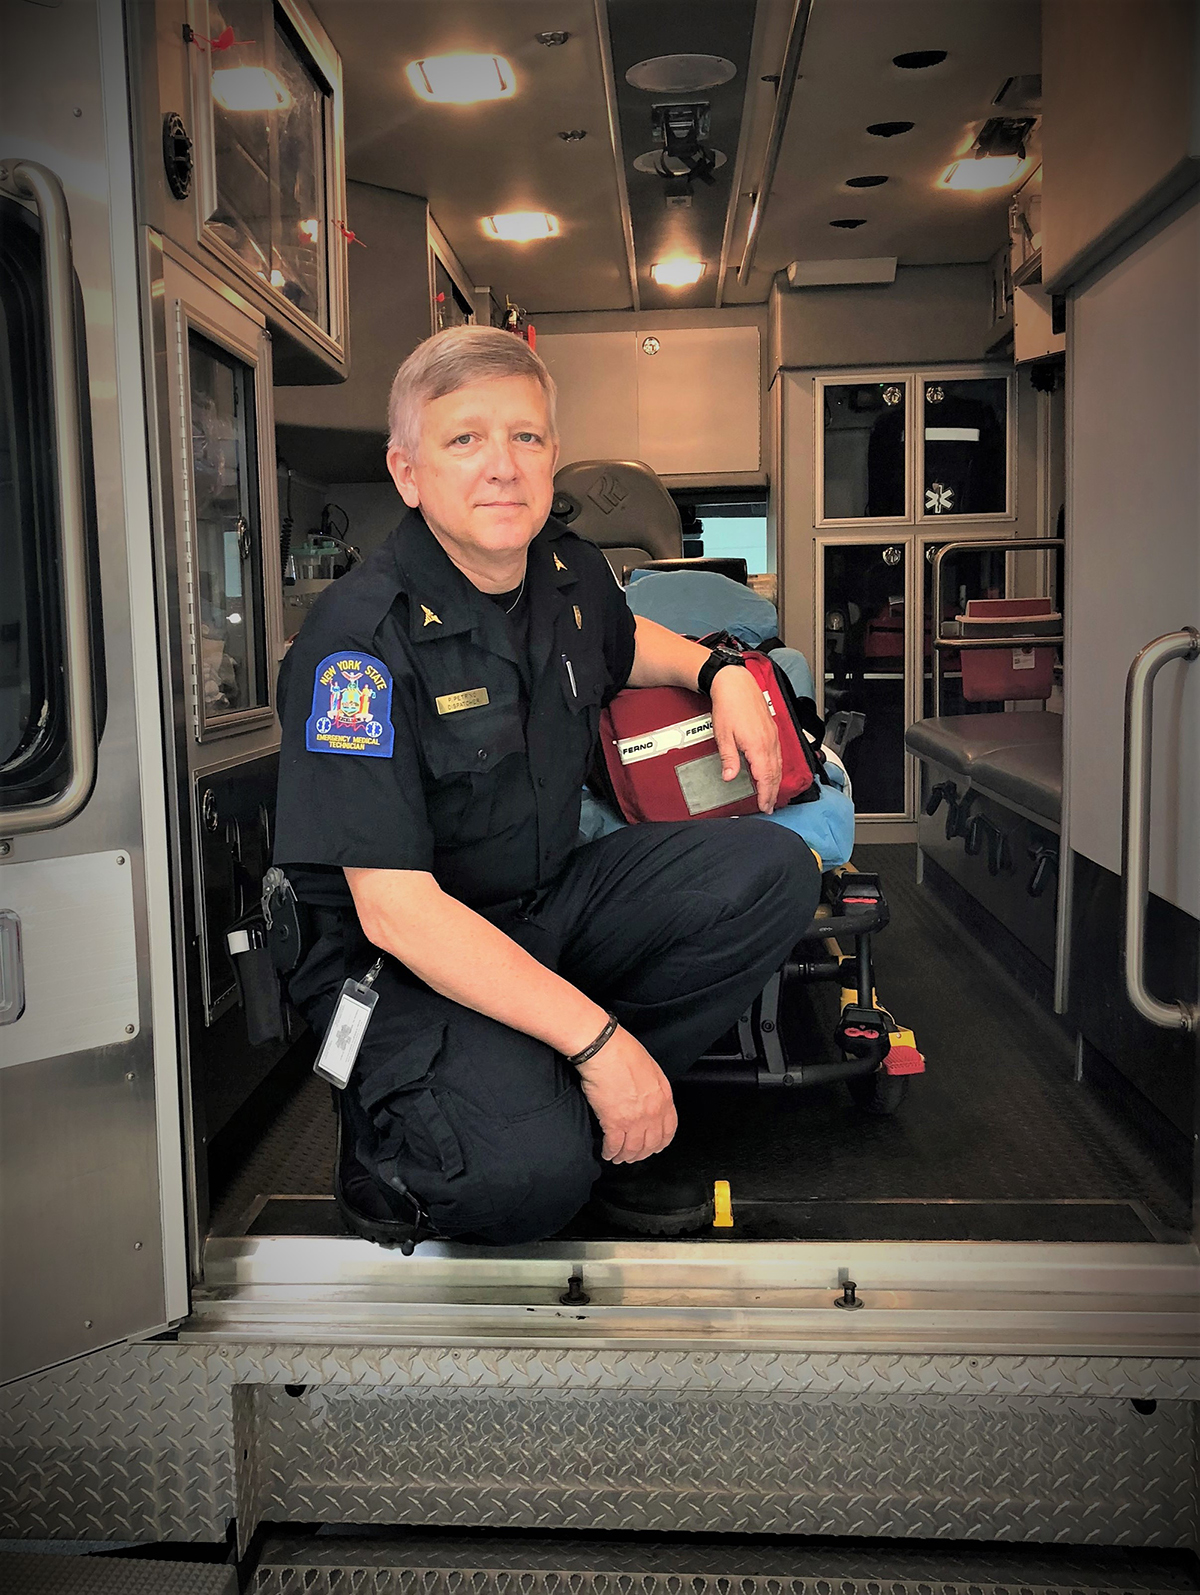 EMS Week 2020: PVA Member Showcase with EMT Paul Petrino